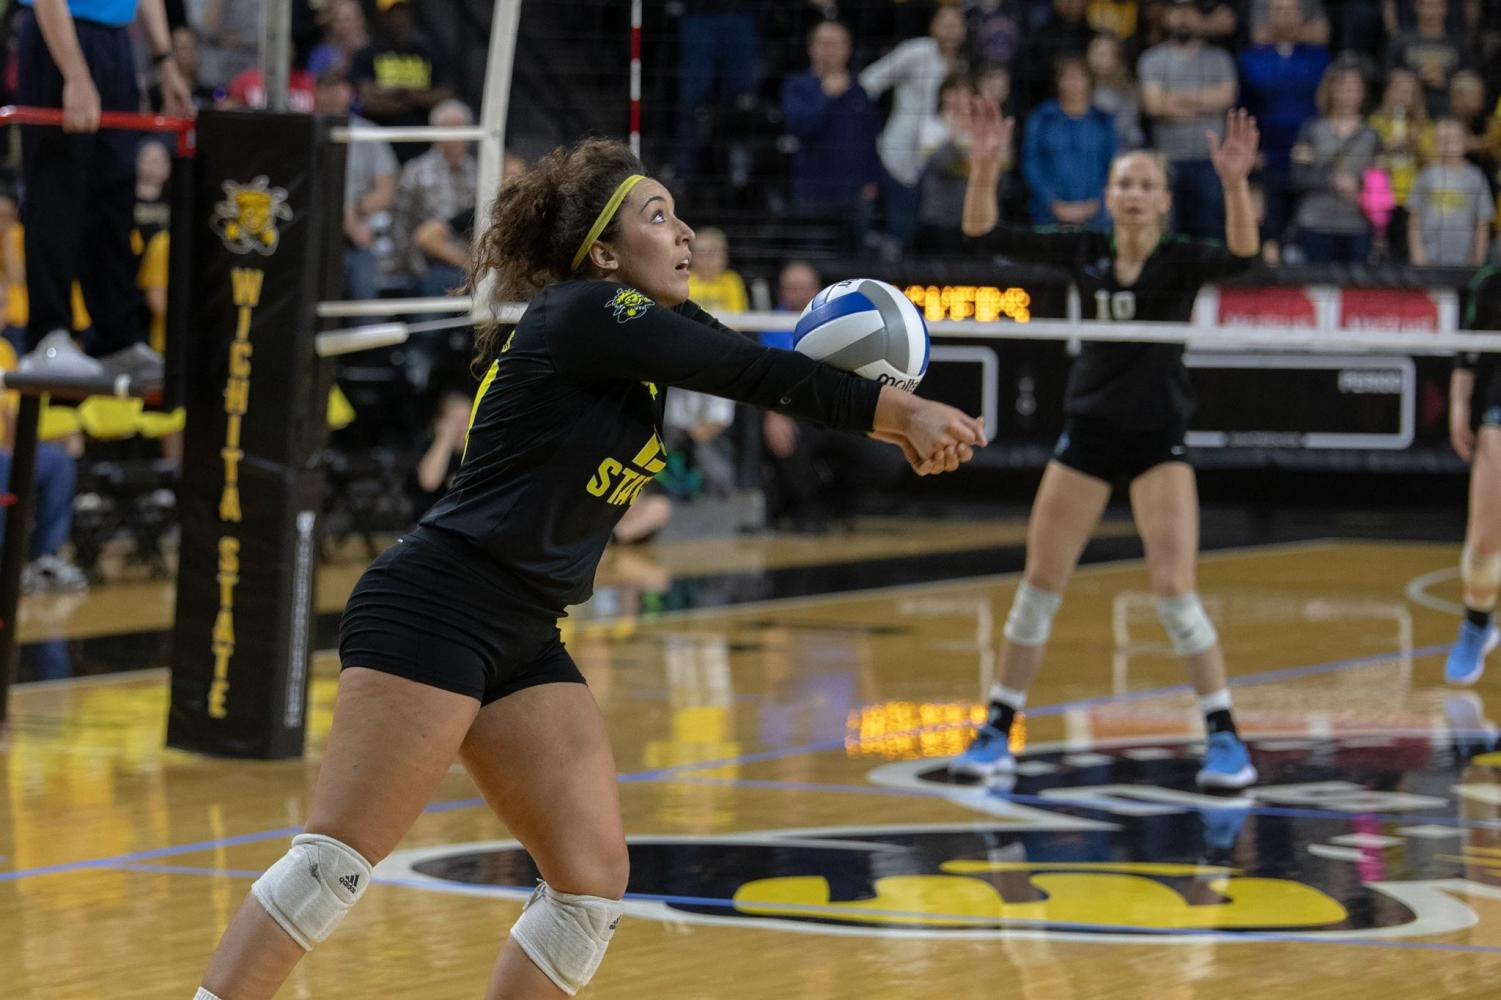 Wichia State's Giorgia Civita digs the ball during their game against Tulane on Sept. 21, 2018 at Koch Arena.